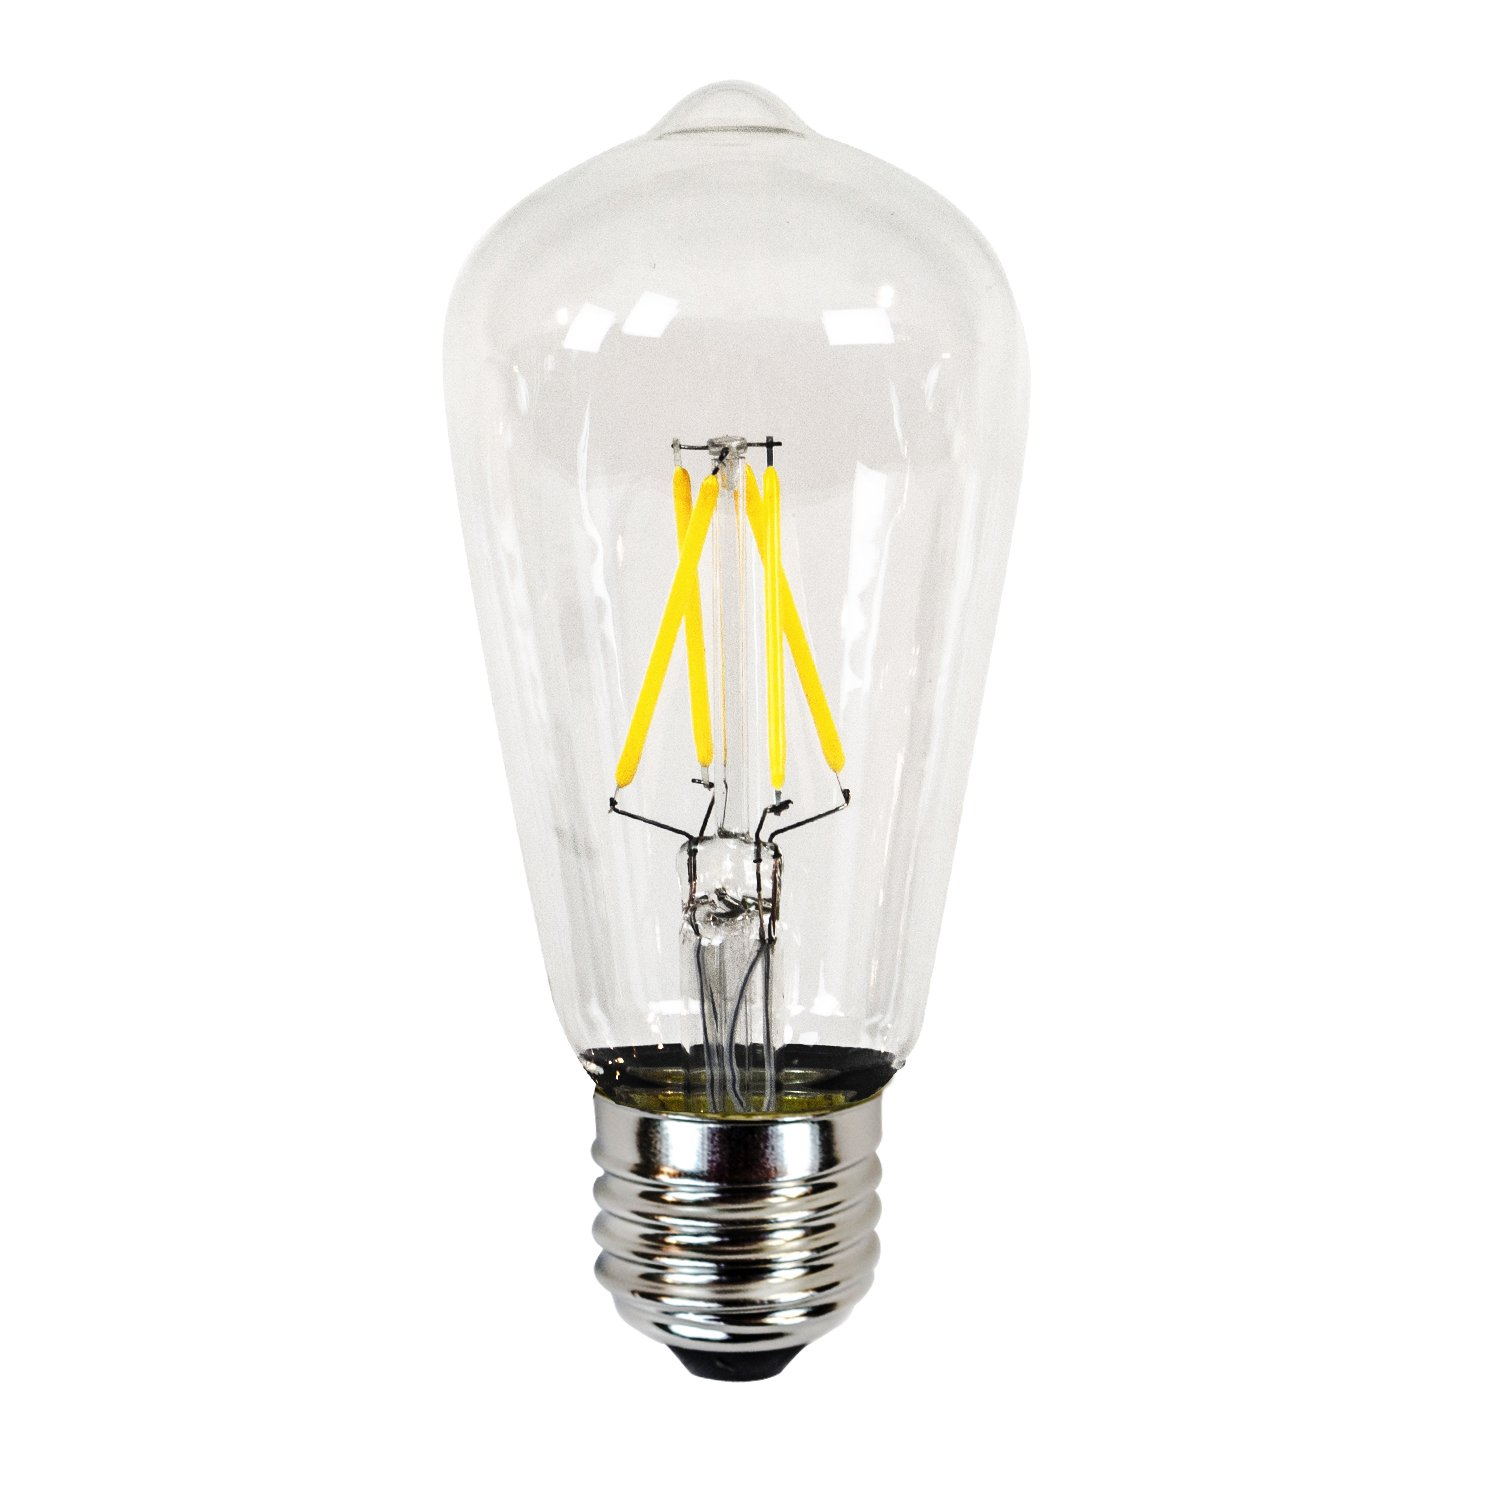 pictures led conventional best fresh bulb light home interior for lighting can recessed modern of bulbs